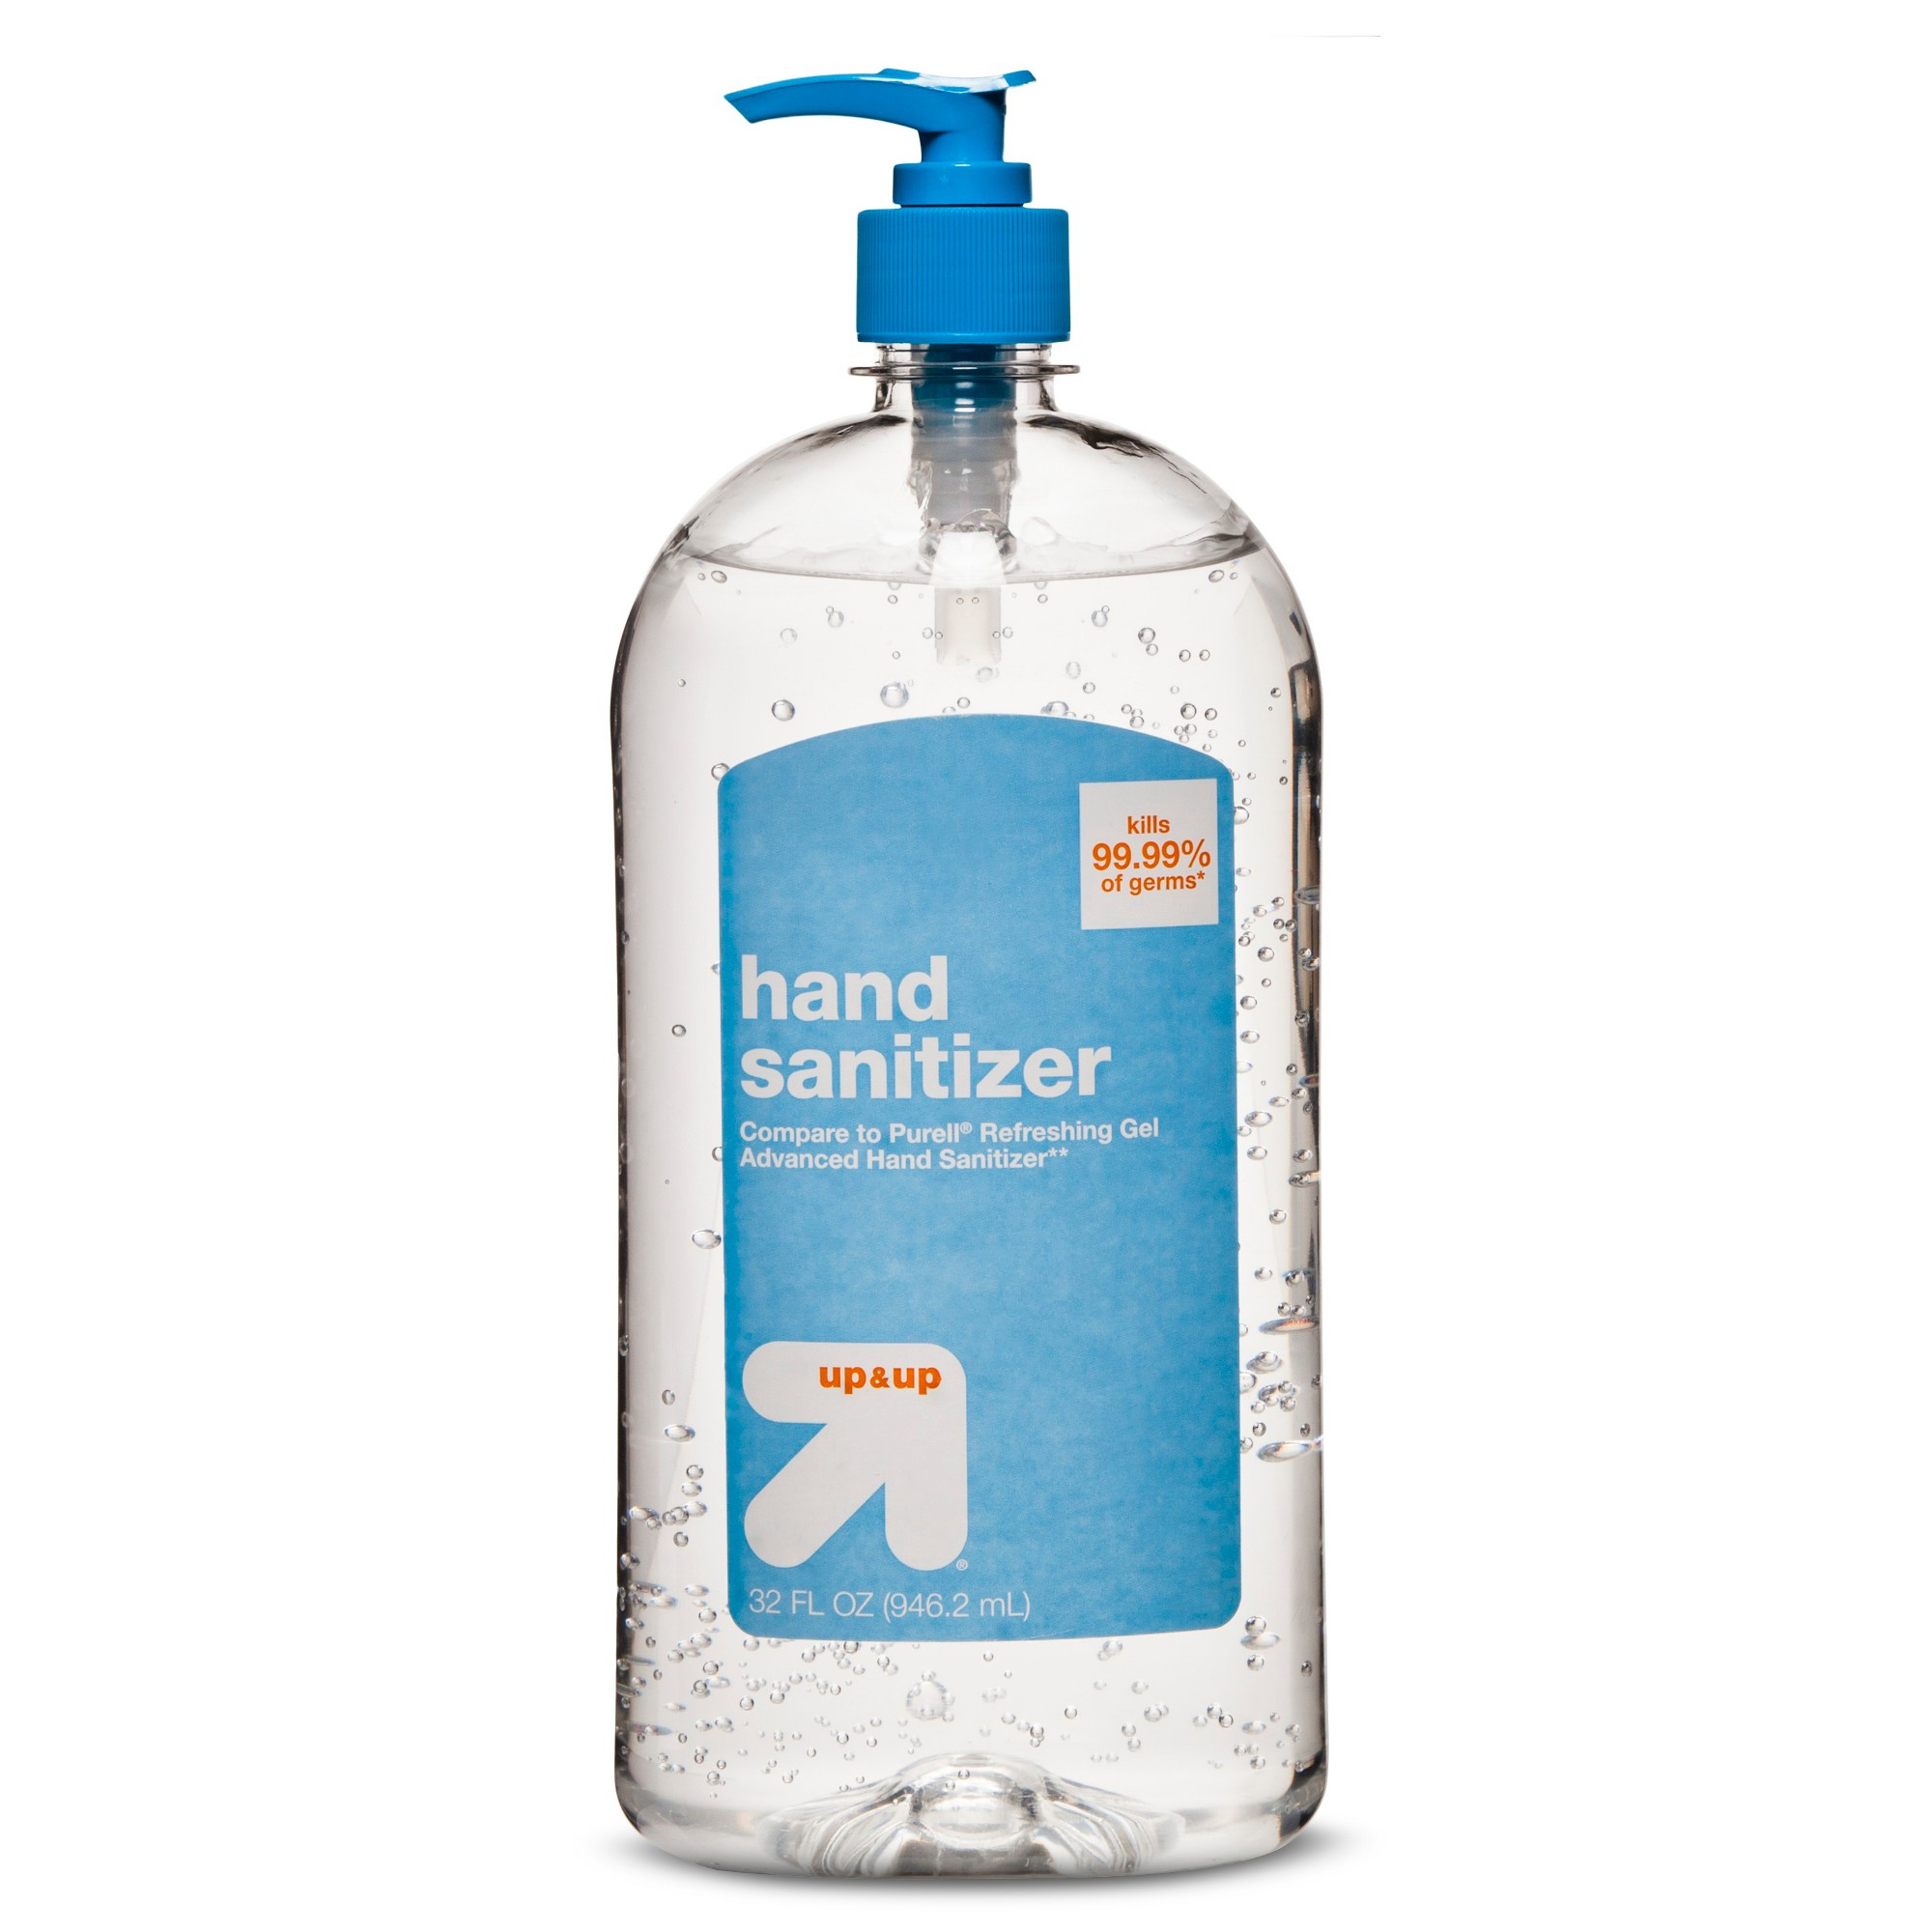 Hand Sanitizer 32 Fl Oz Up Up With Images Hand Sanitizer